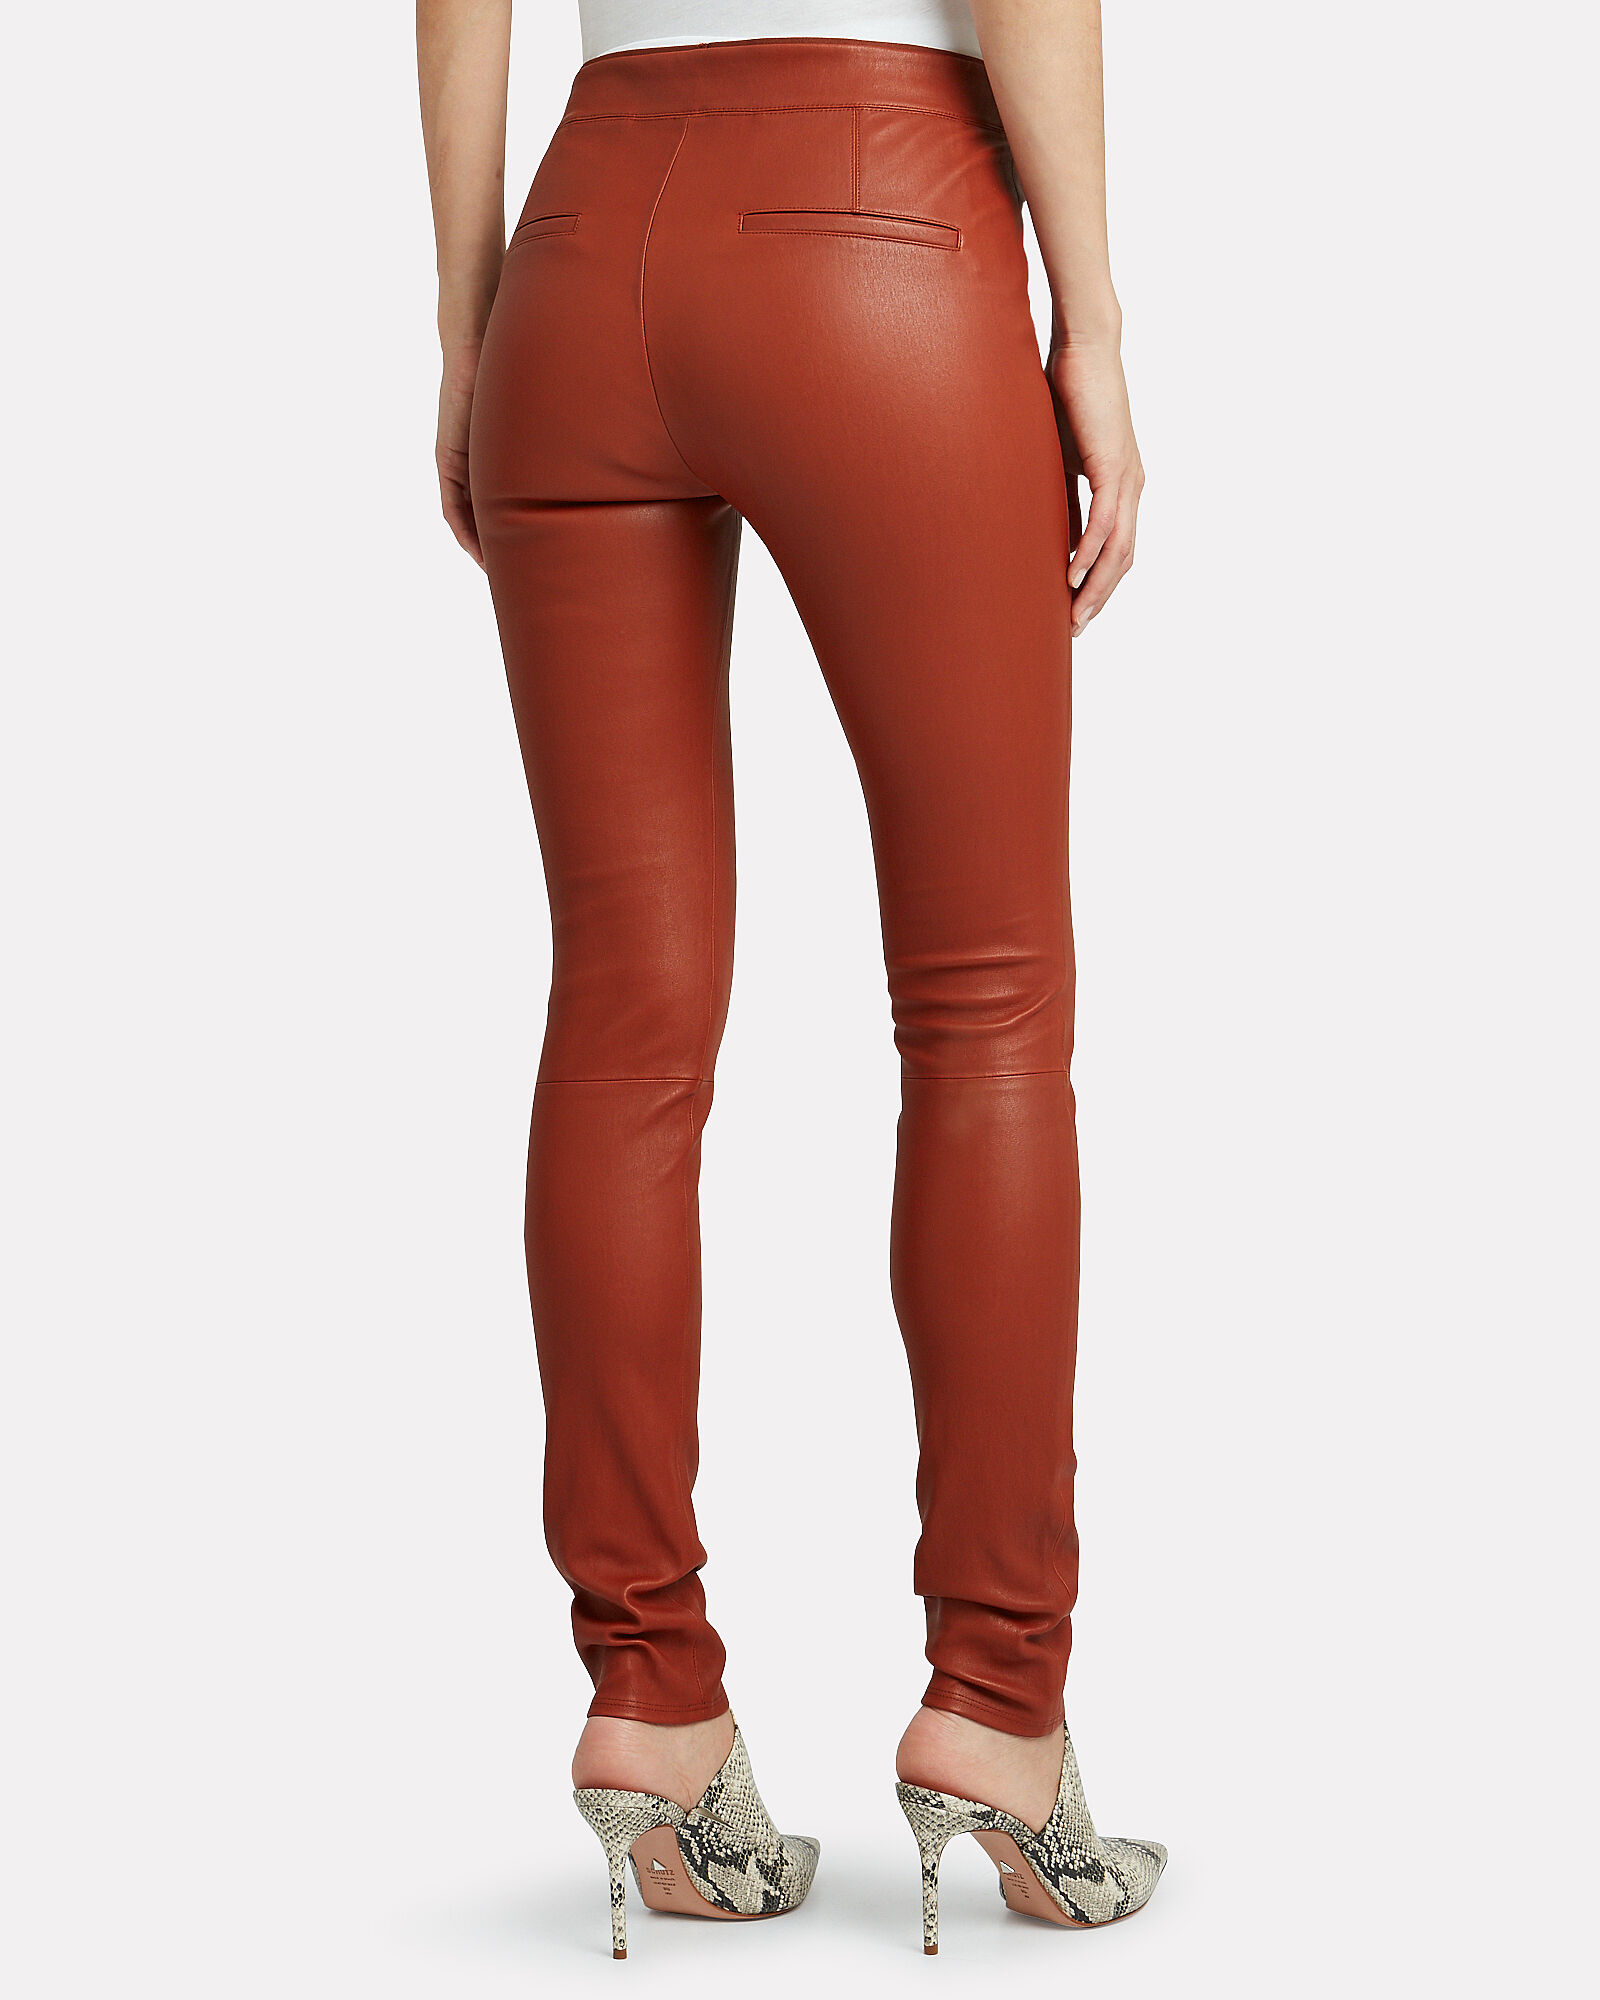 Lambskin Leather Leggings, BROWN, hi-res